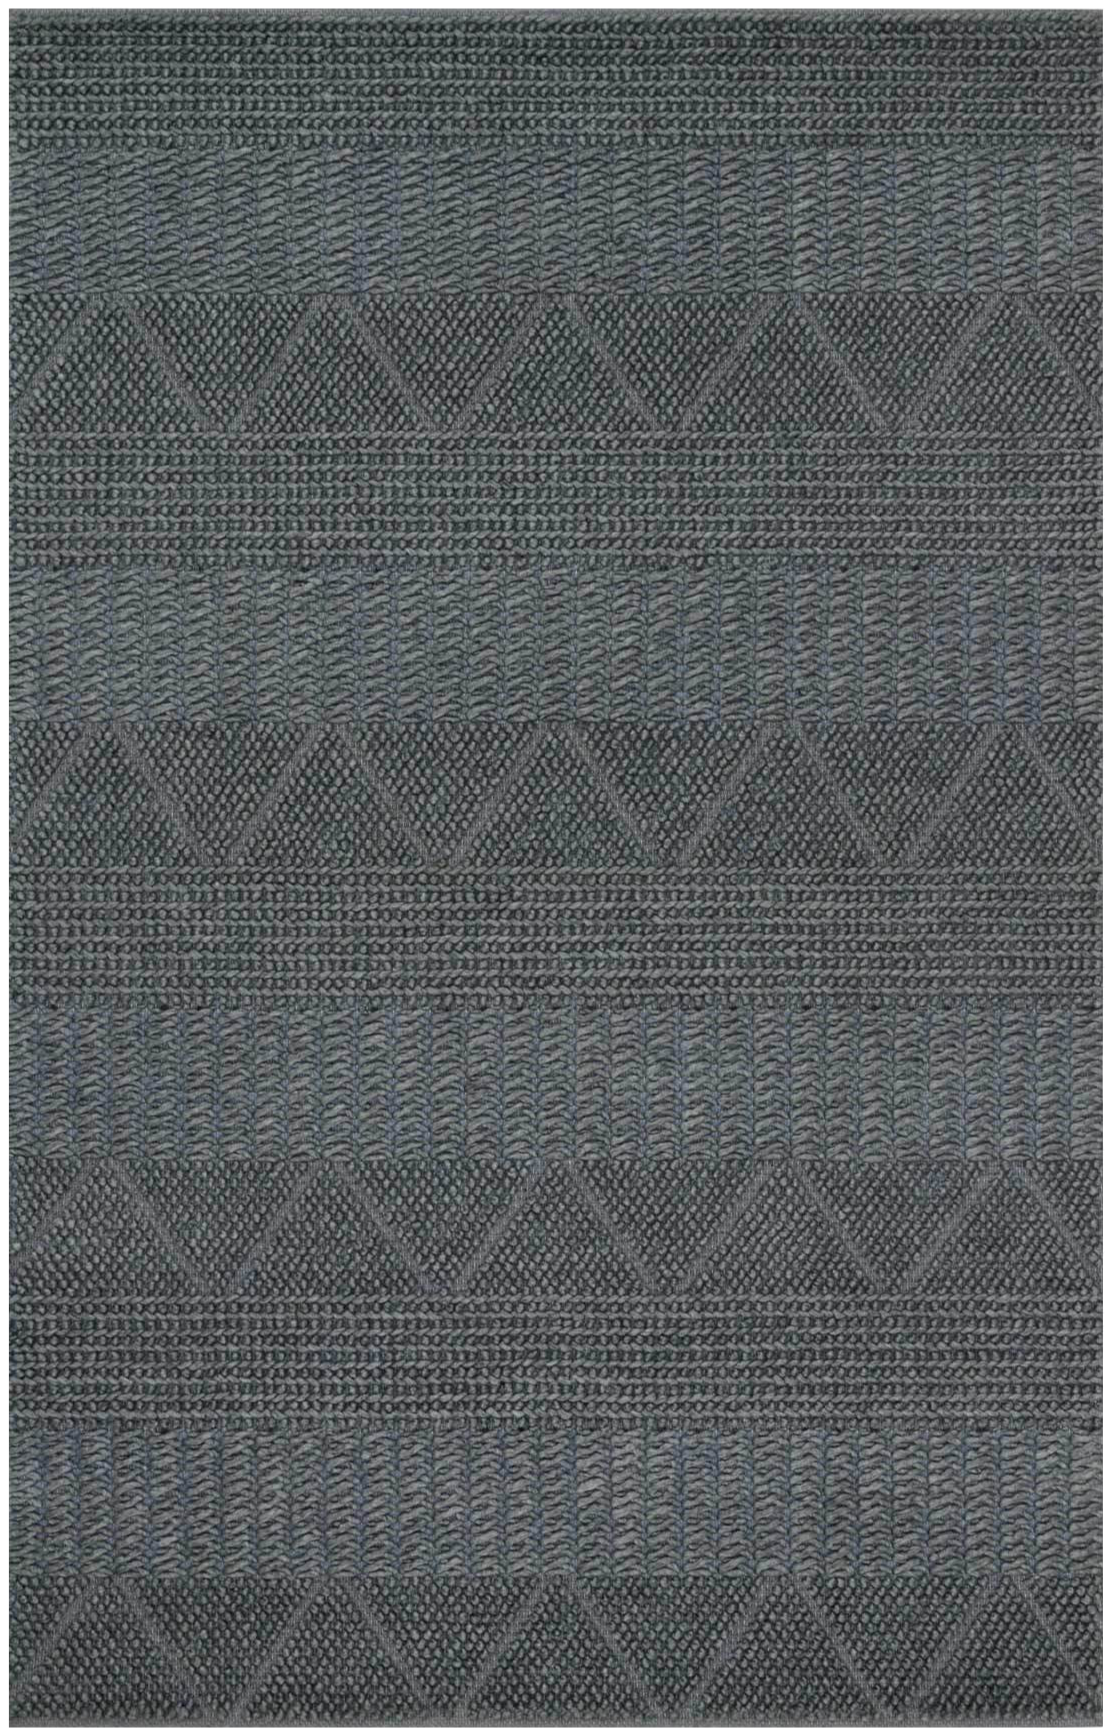 ROWAN - DENIM RUG (NEW!)